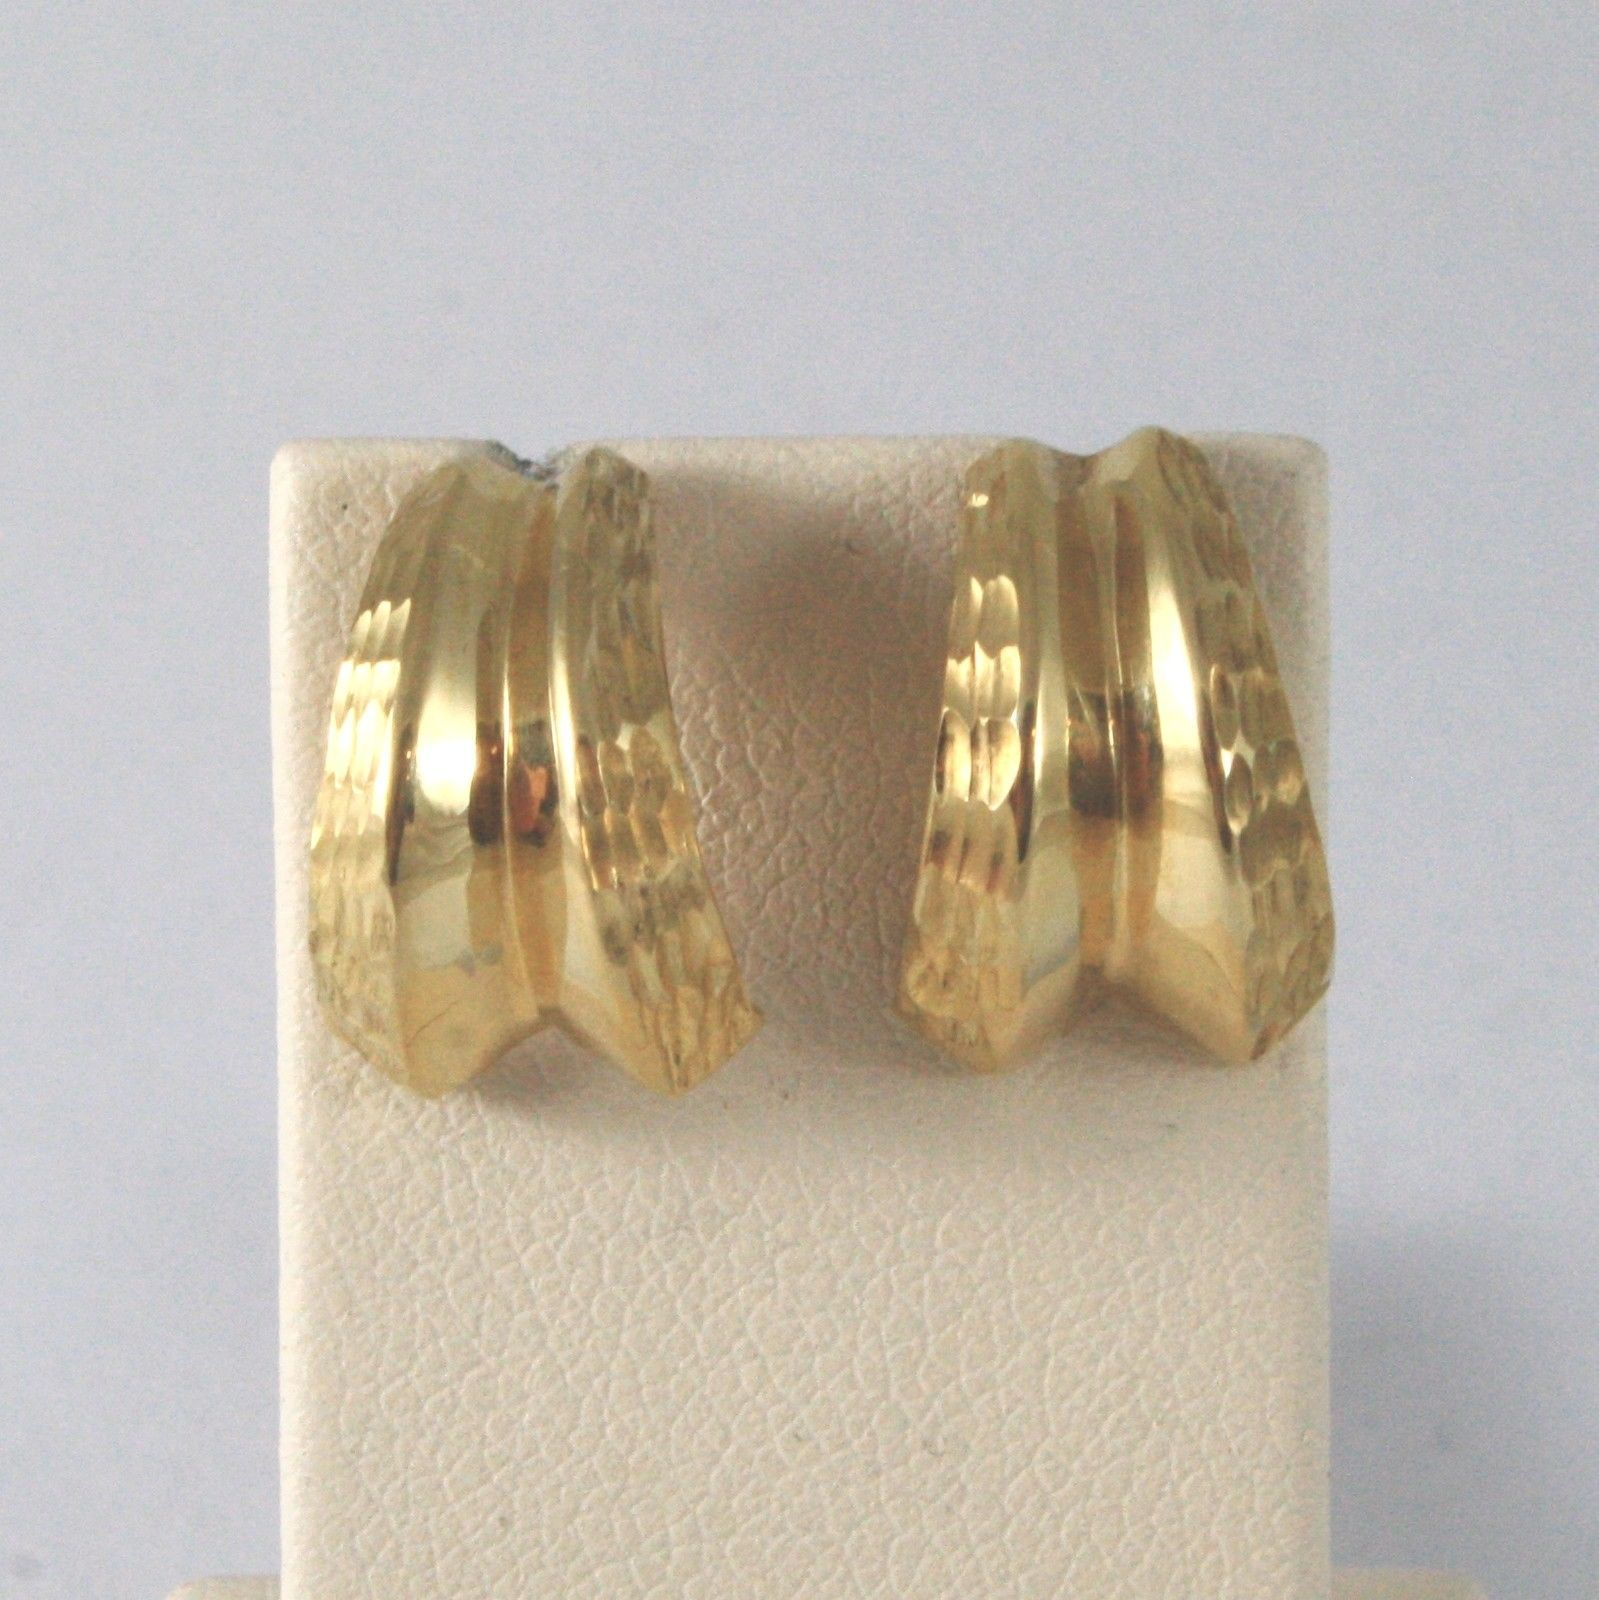 18K SOLID YELLOW GOLD SEMICIRCLES WORKED EARRINGS MADE IN ITALY 18K